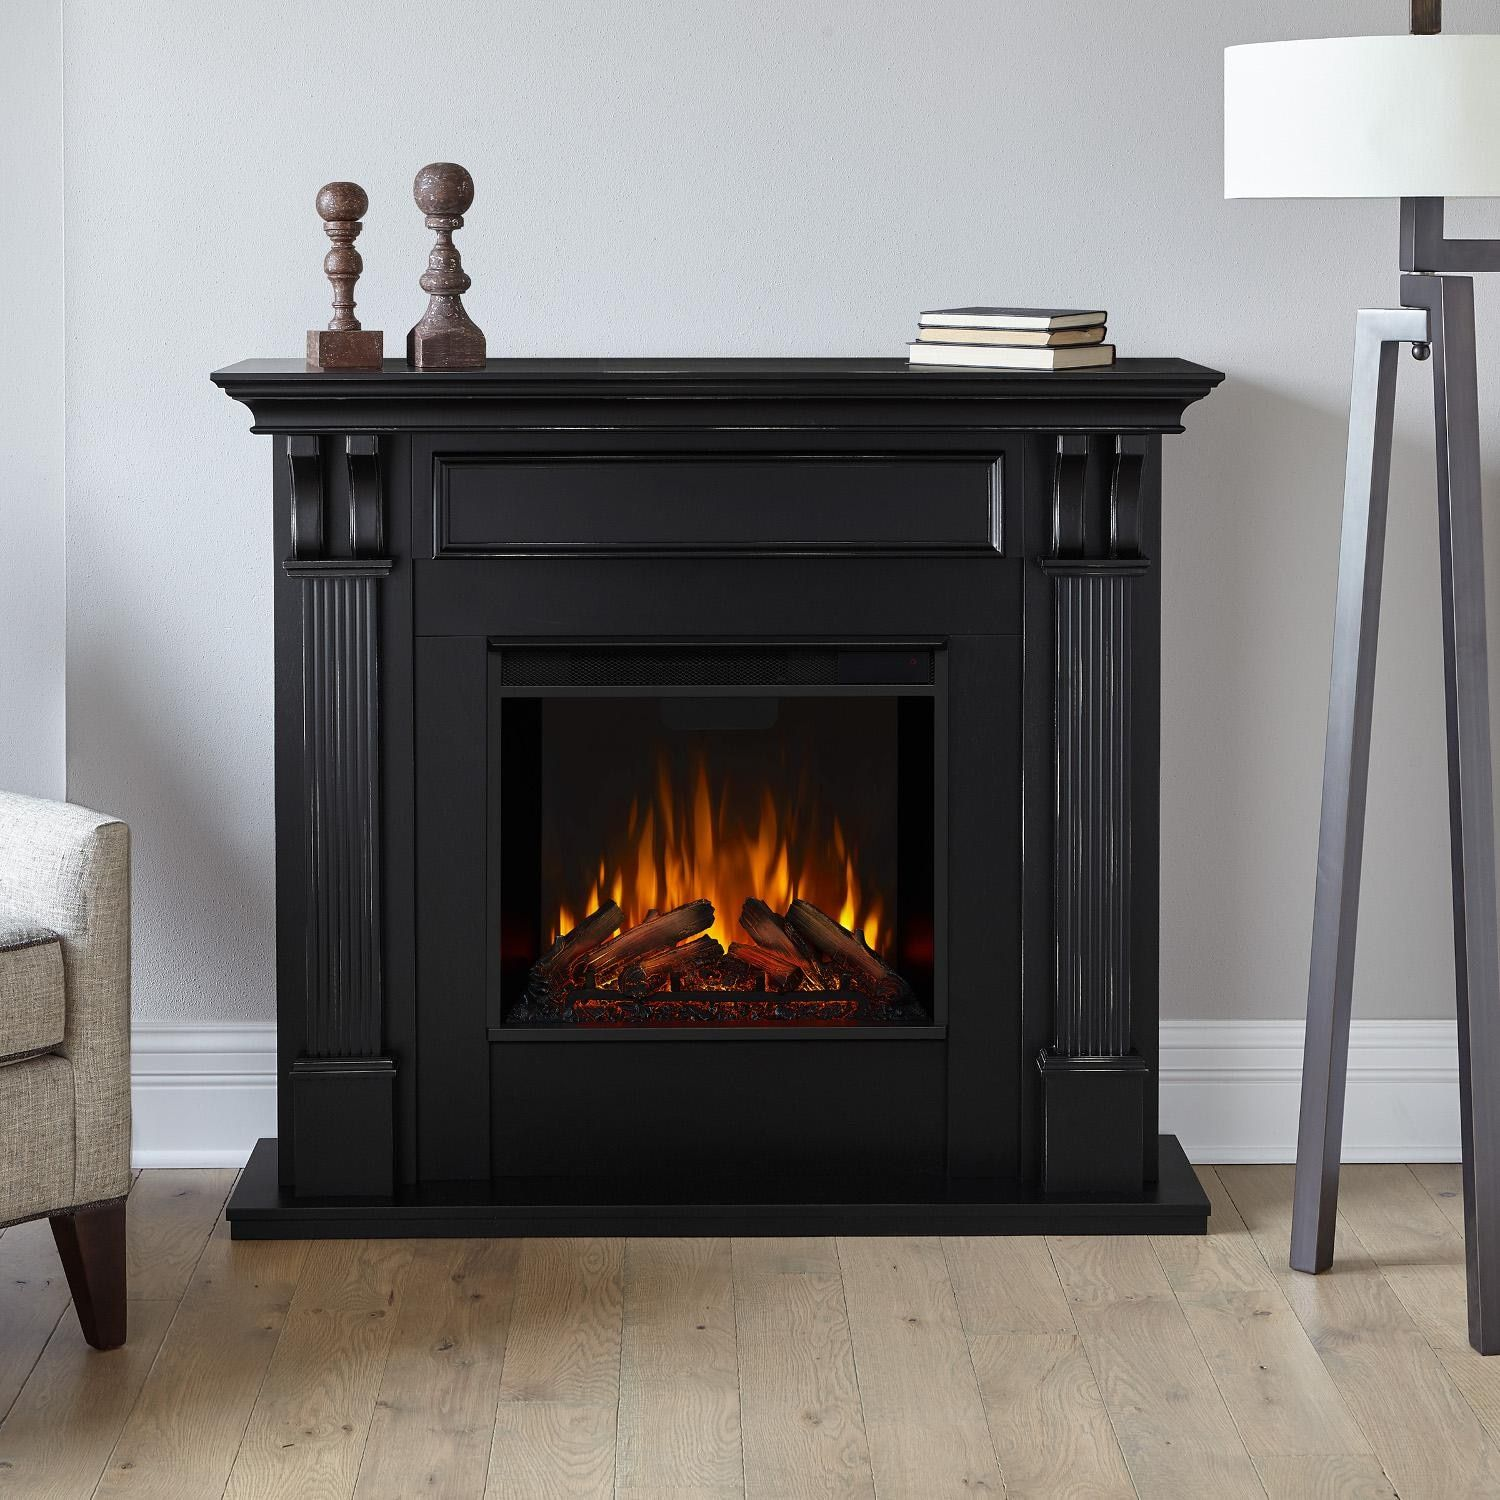 Real Flame 7100e Bw Ashley 48 Inch Electric Fireplace With Mantel Blackwash Bbqguys In 2021 Electric Fireplace Fireplace Black Electric Fireplace